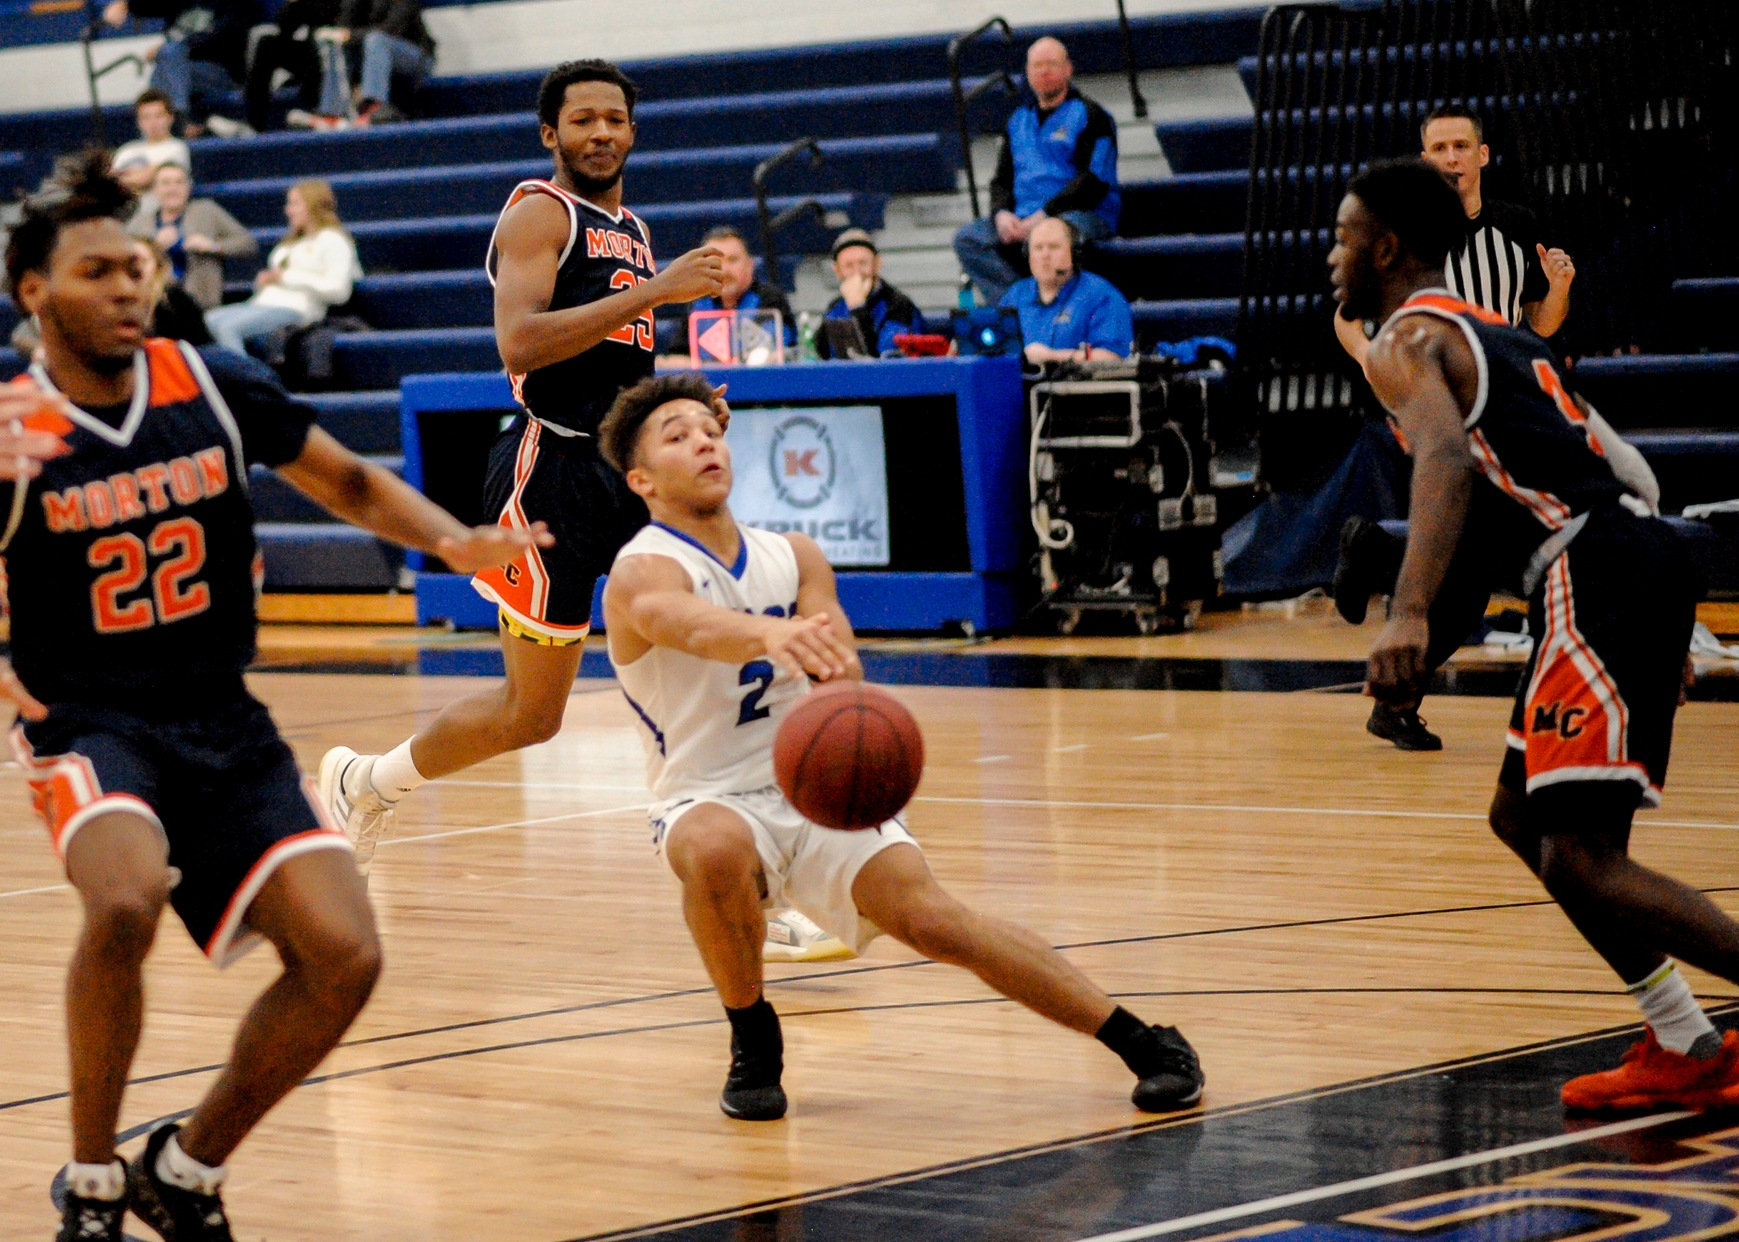 DMACC men's basketball team improves to 5-1 with two wins